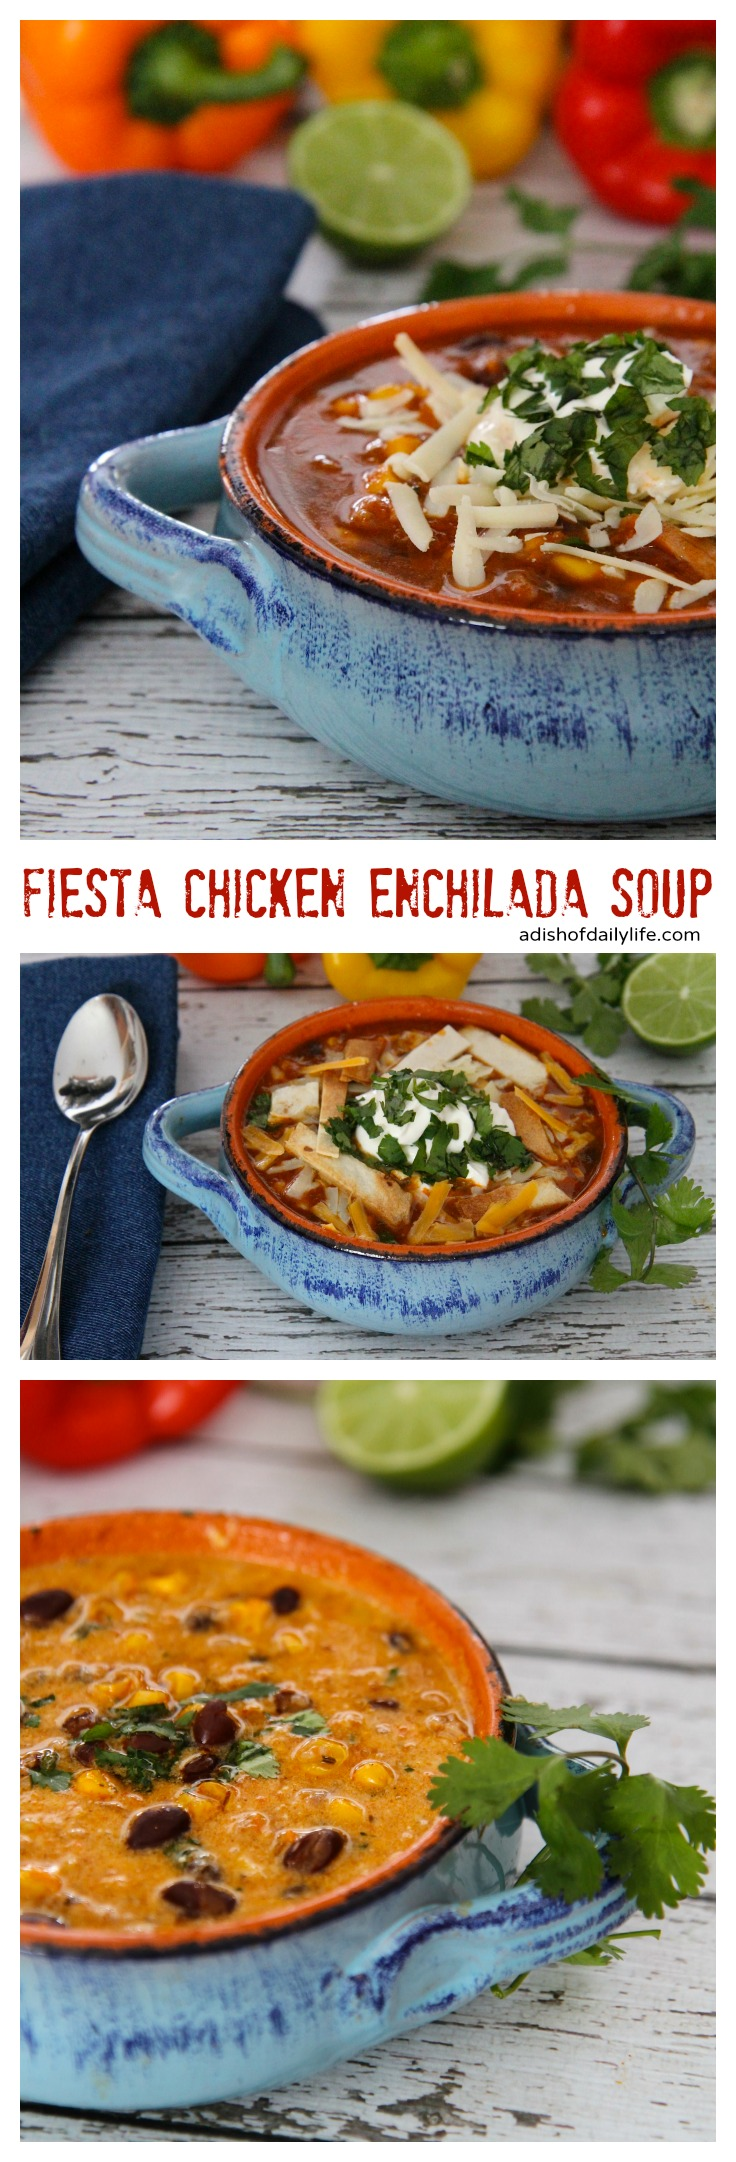 One Pot Meal ~ Delicious and easy to make, you can have this Fiesta Chicken Enchilada Soup on the dinner table in 30 minutes!